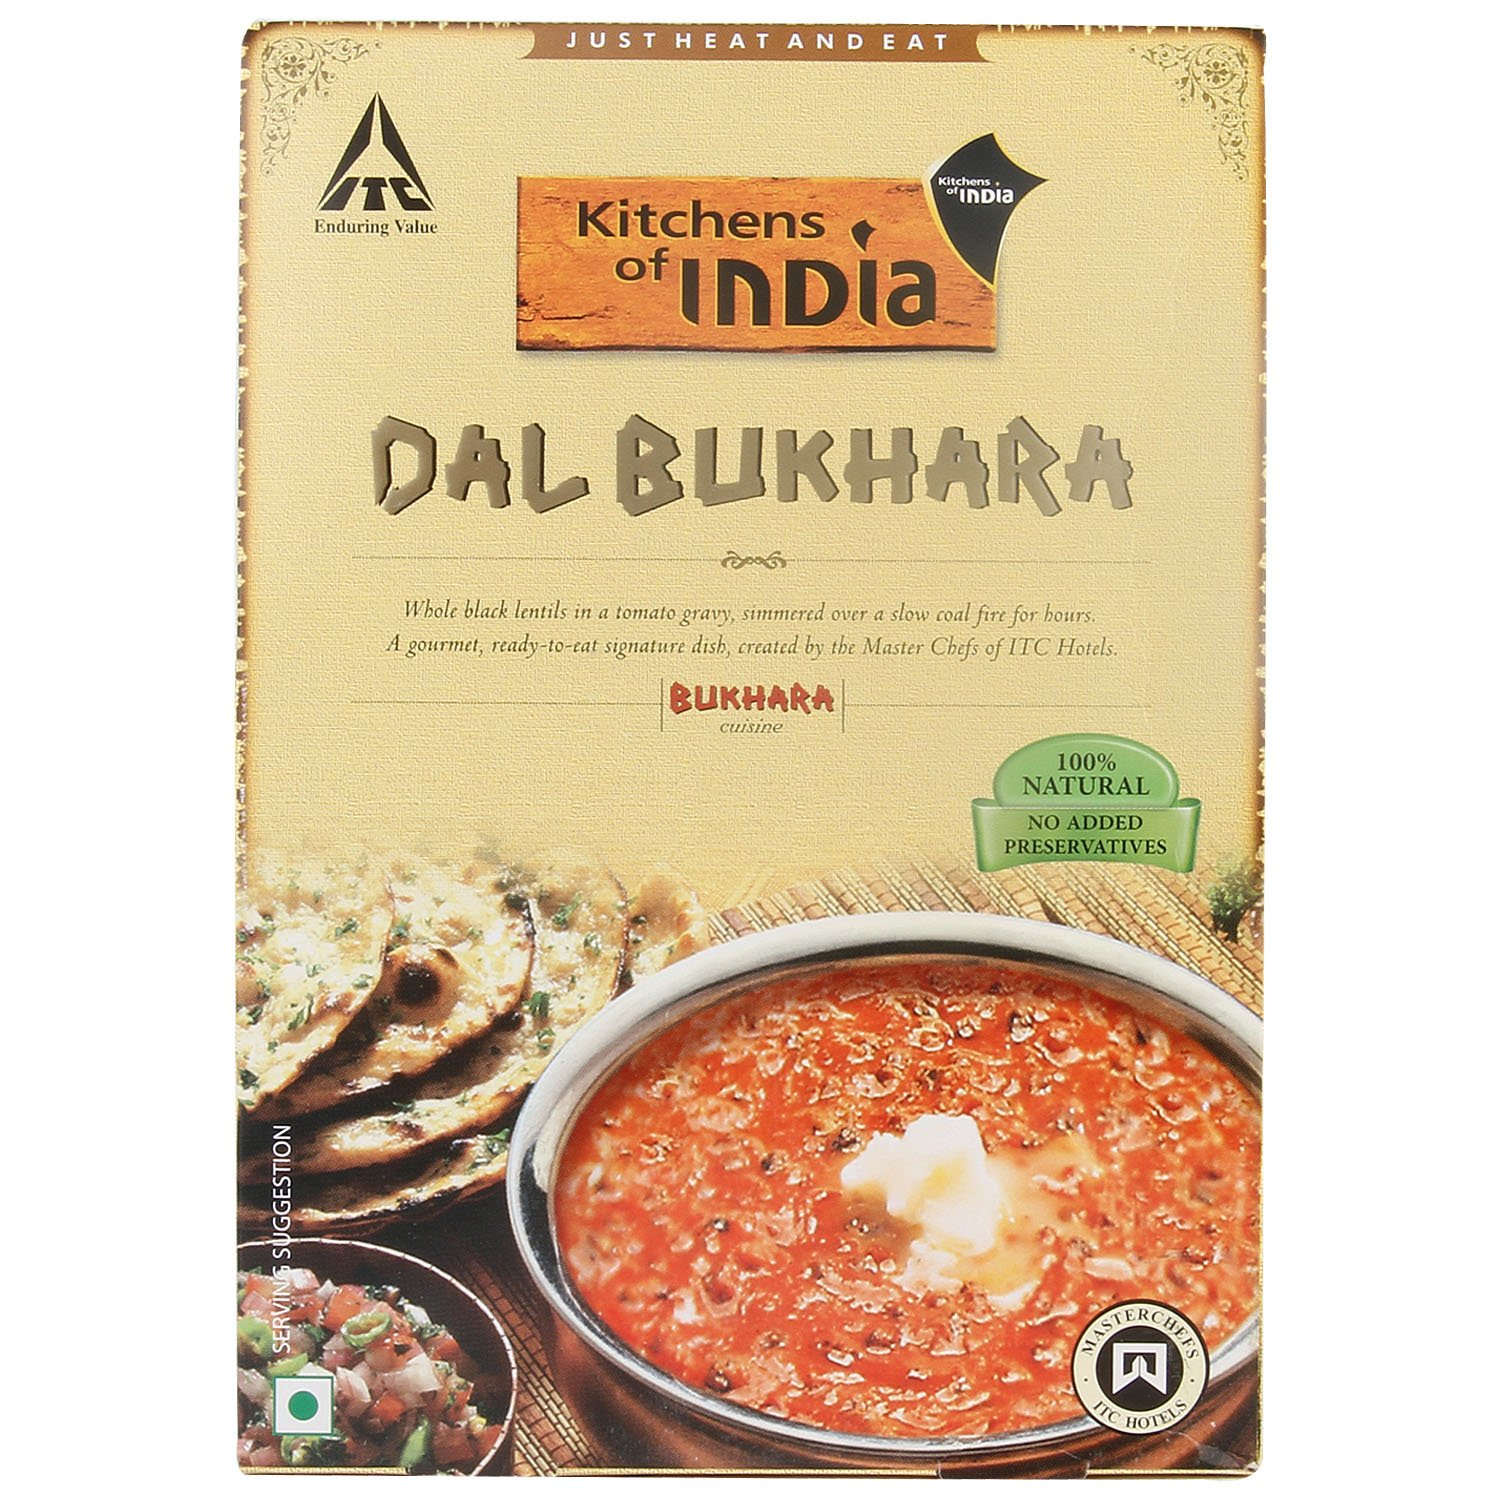 Superieur Kitchens Of India Ready To Eat Gravy   Dal Bukhara, 285g Carton: Amazon.in:  Grocery U0026 Gourmet Foods